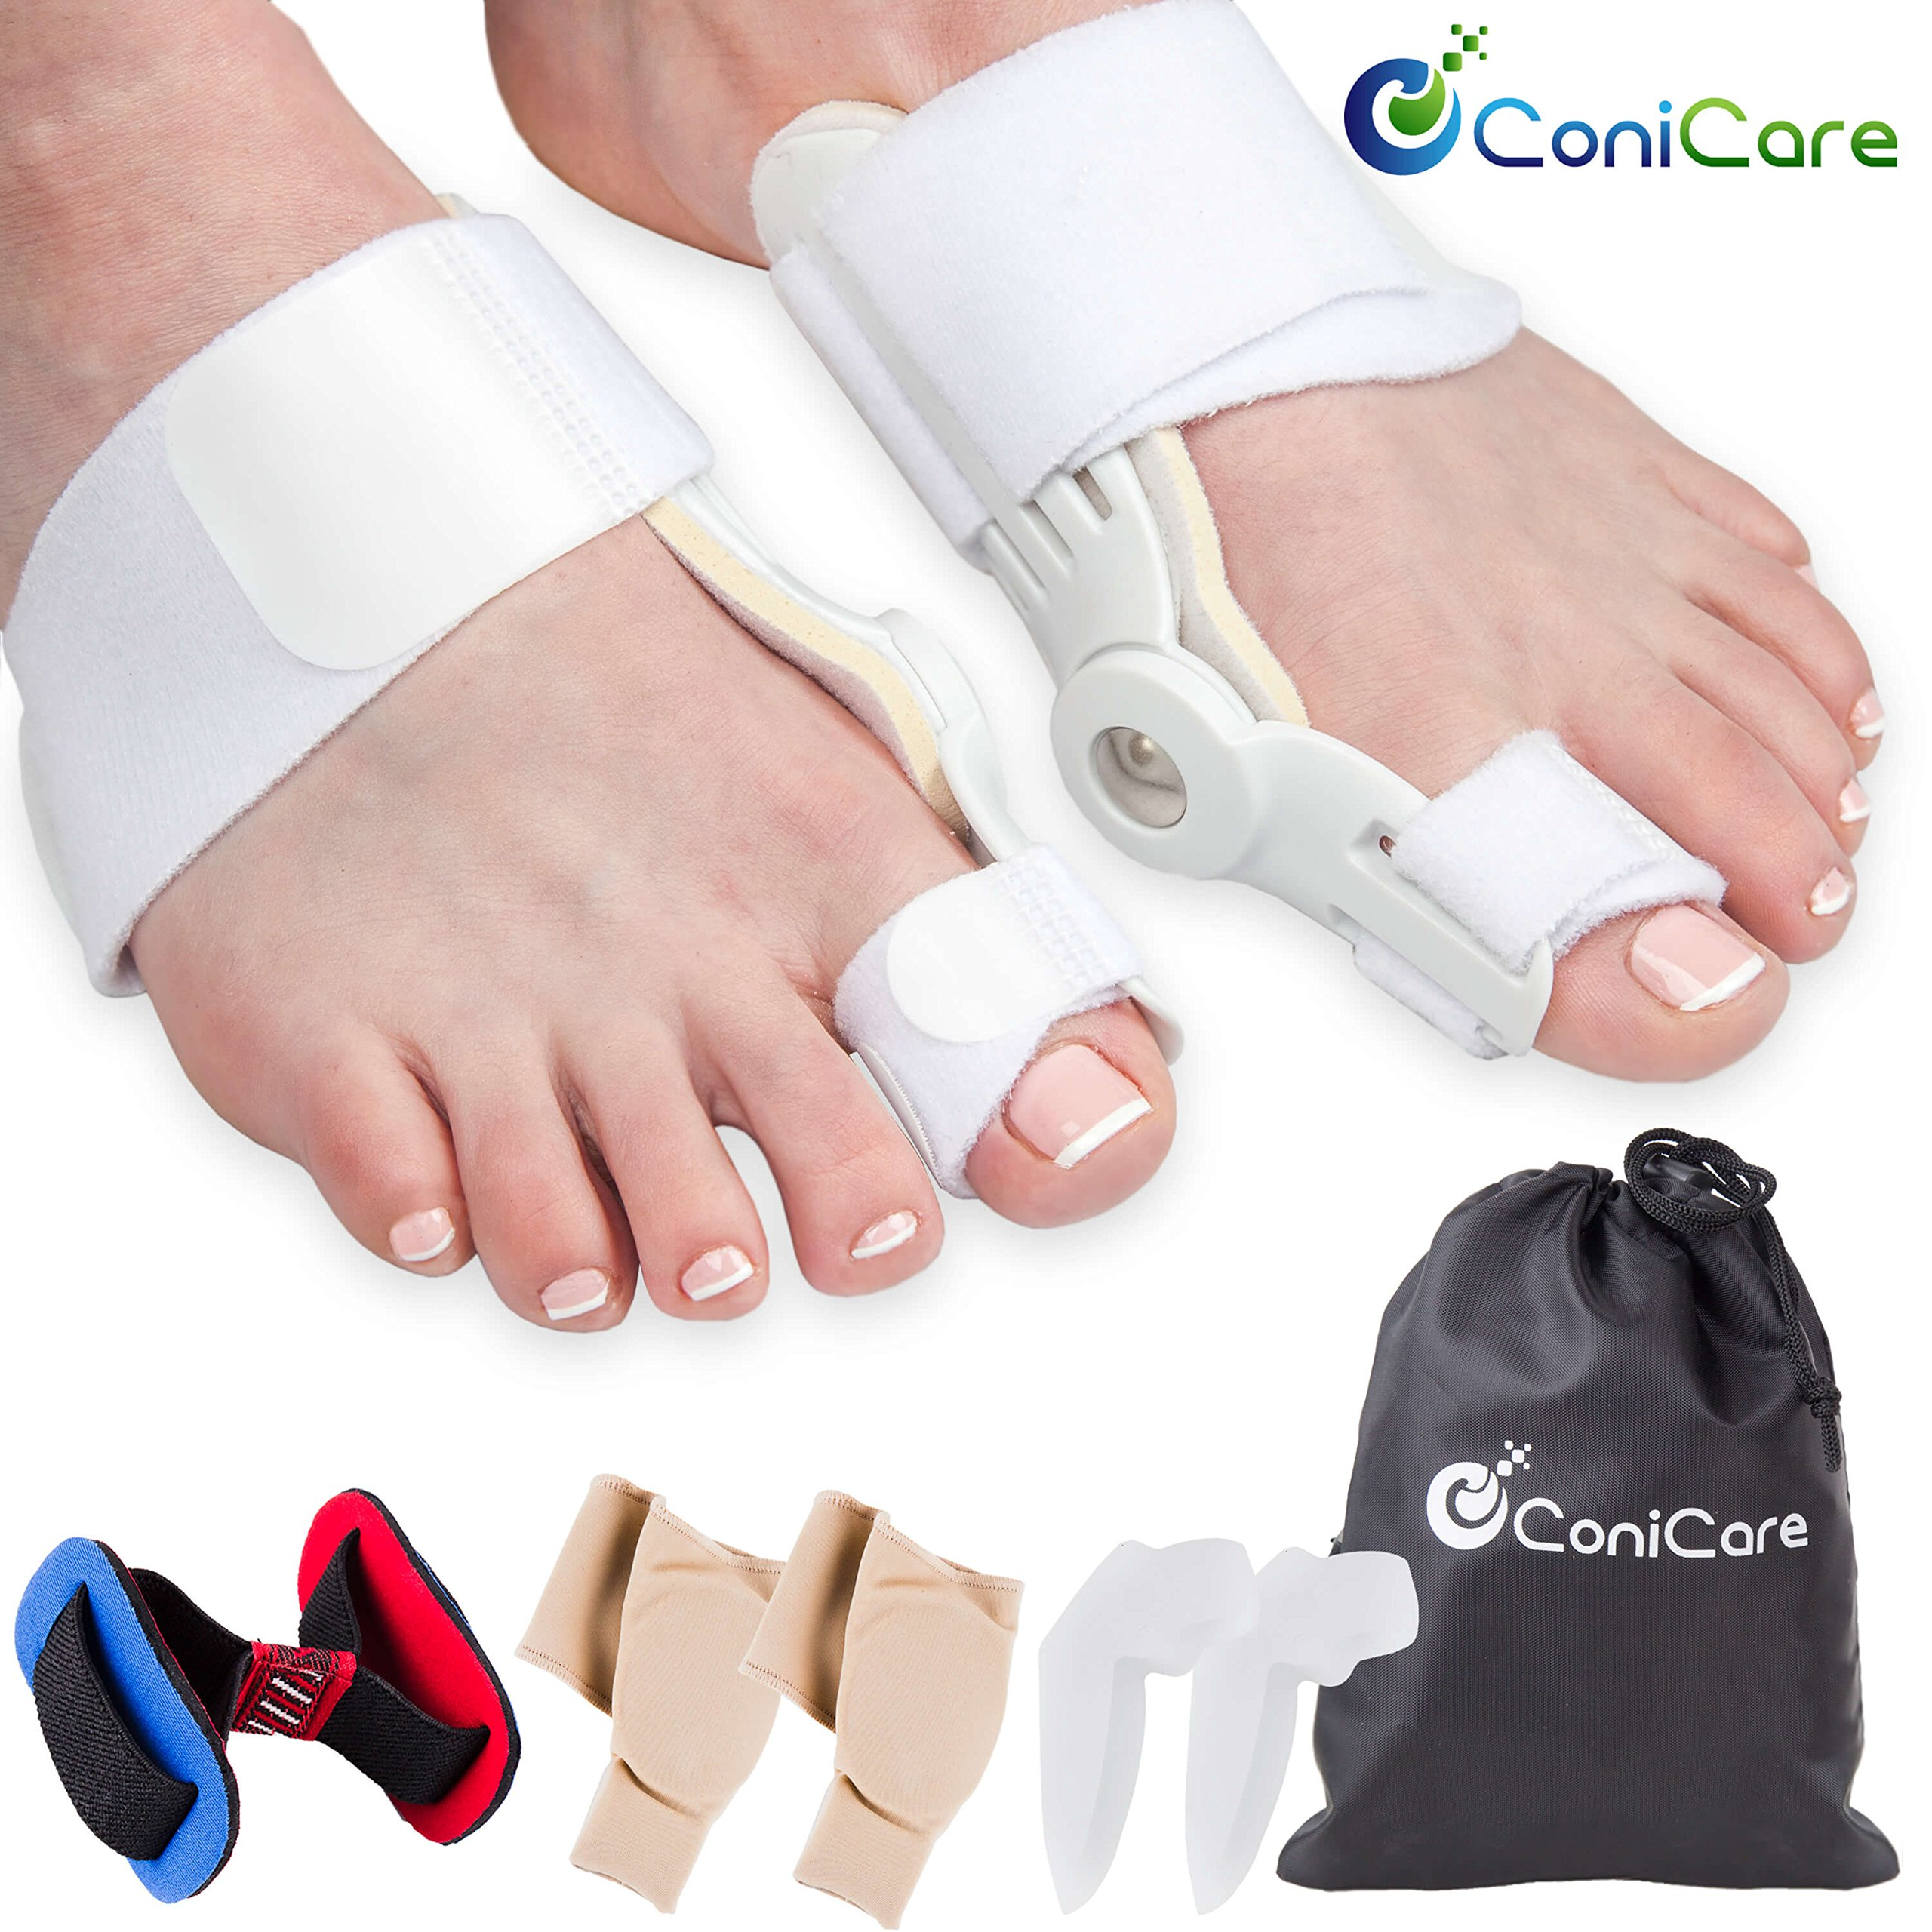 Orthopedic Bunion Corrector Relief And Protector Splint Sleeve 8 Piece Kit - Hallux Valgus Pain Relief, Big Toe Joint, Hammer Toe, Toe Separator Spacer And Big Toe Straightener Splint Correction Aid by Conicare